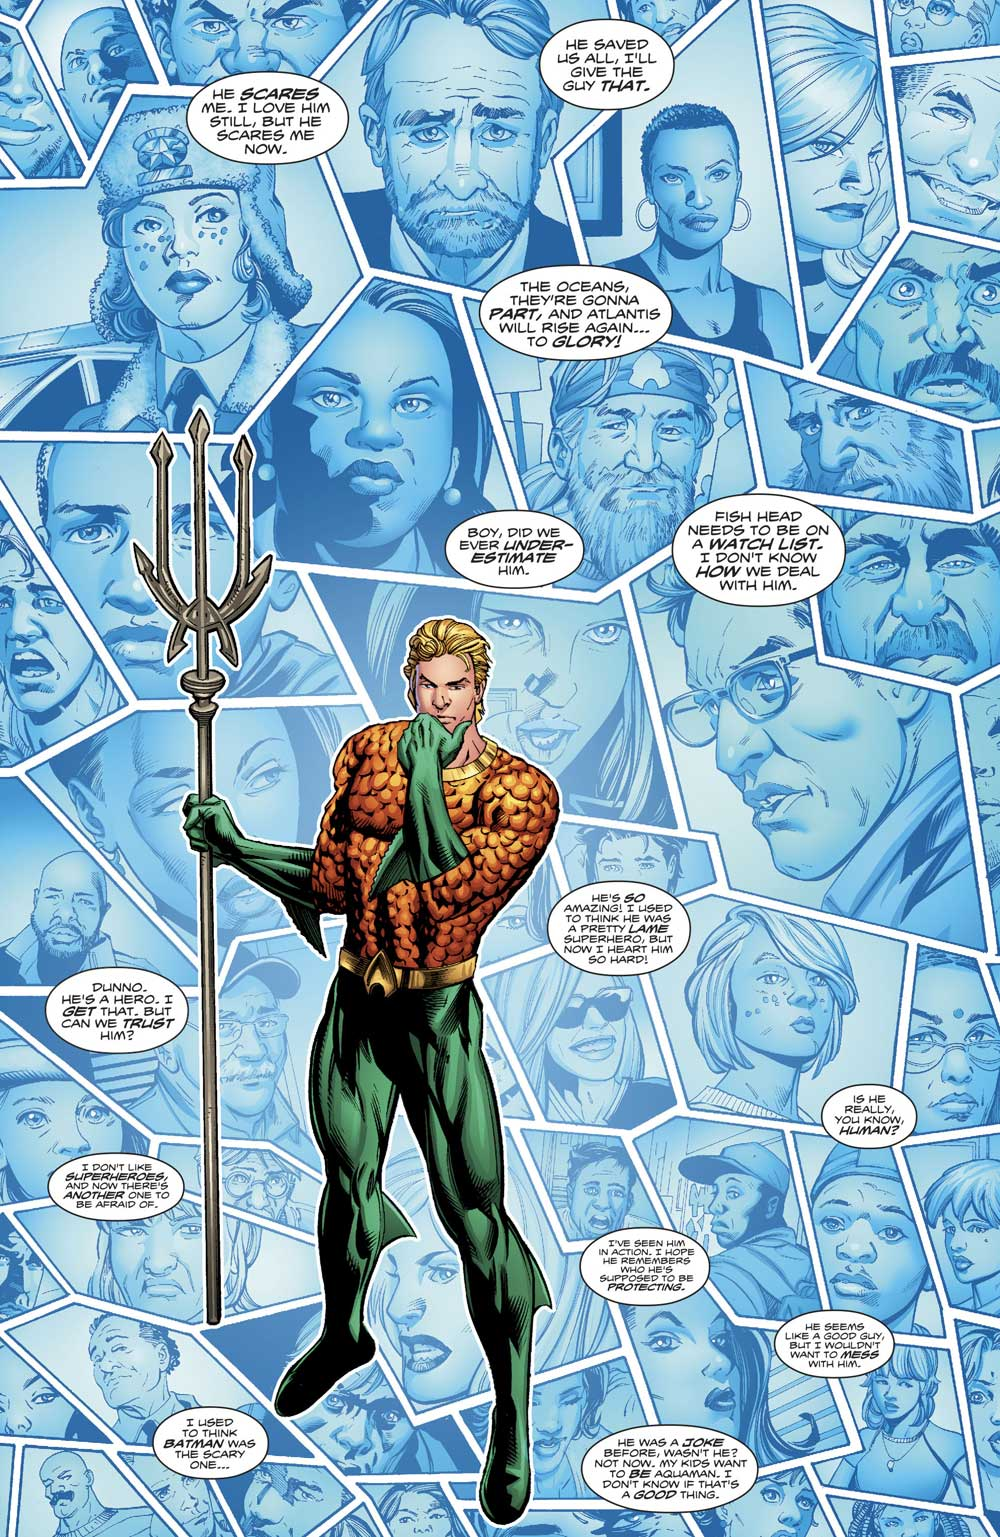 Aquaman #18 by Dan Abnett, Scot Eaton and Wayne Faucher